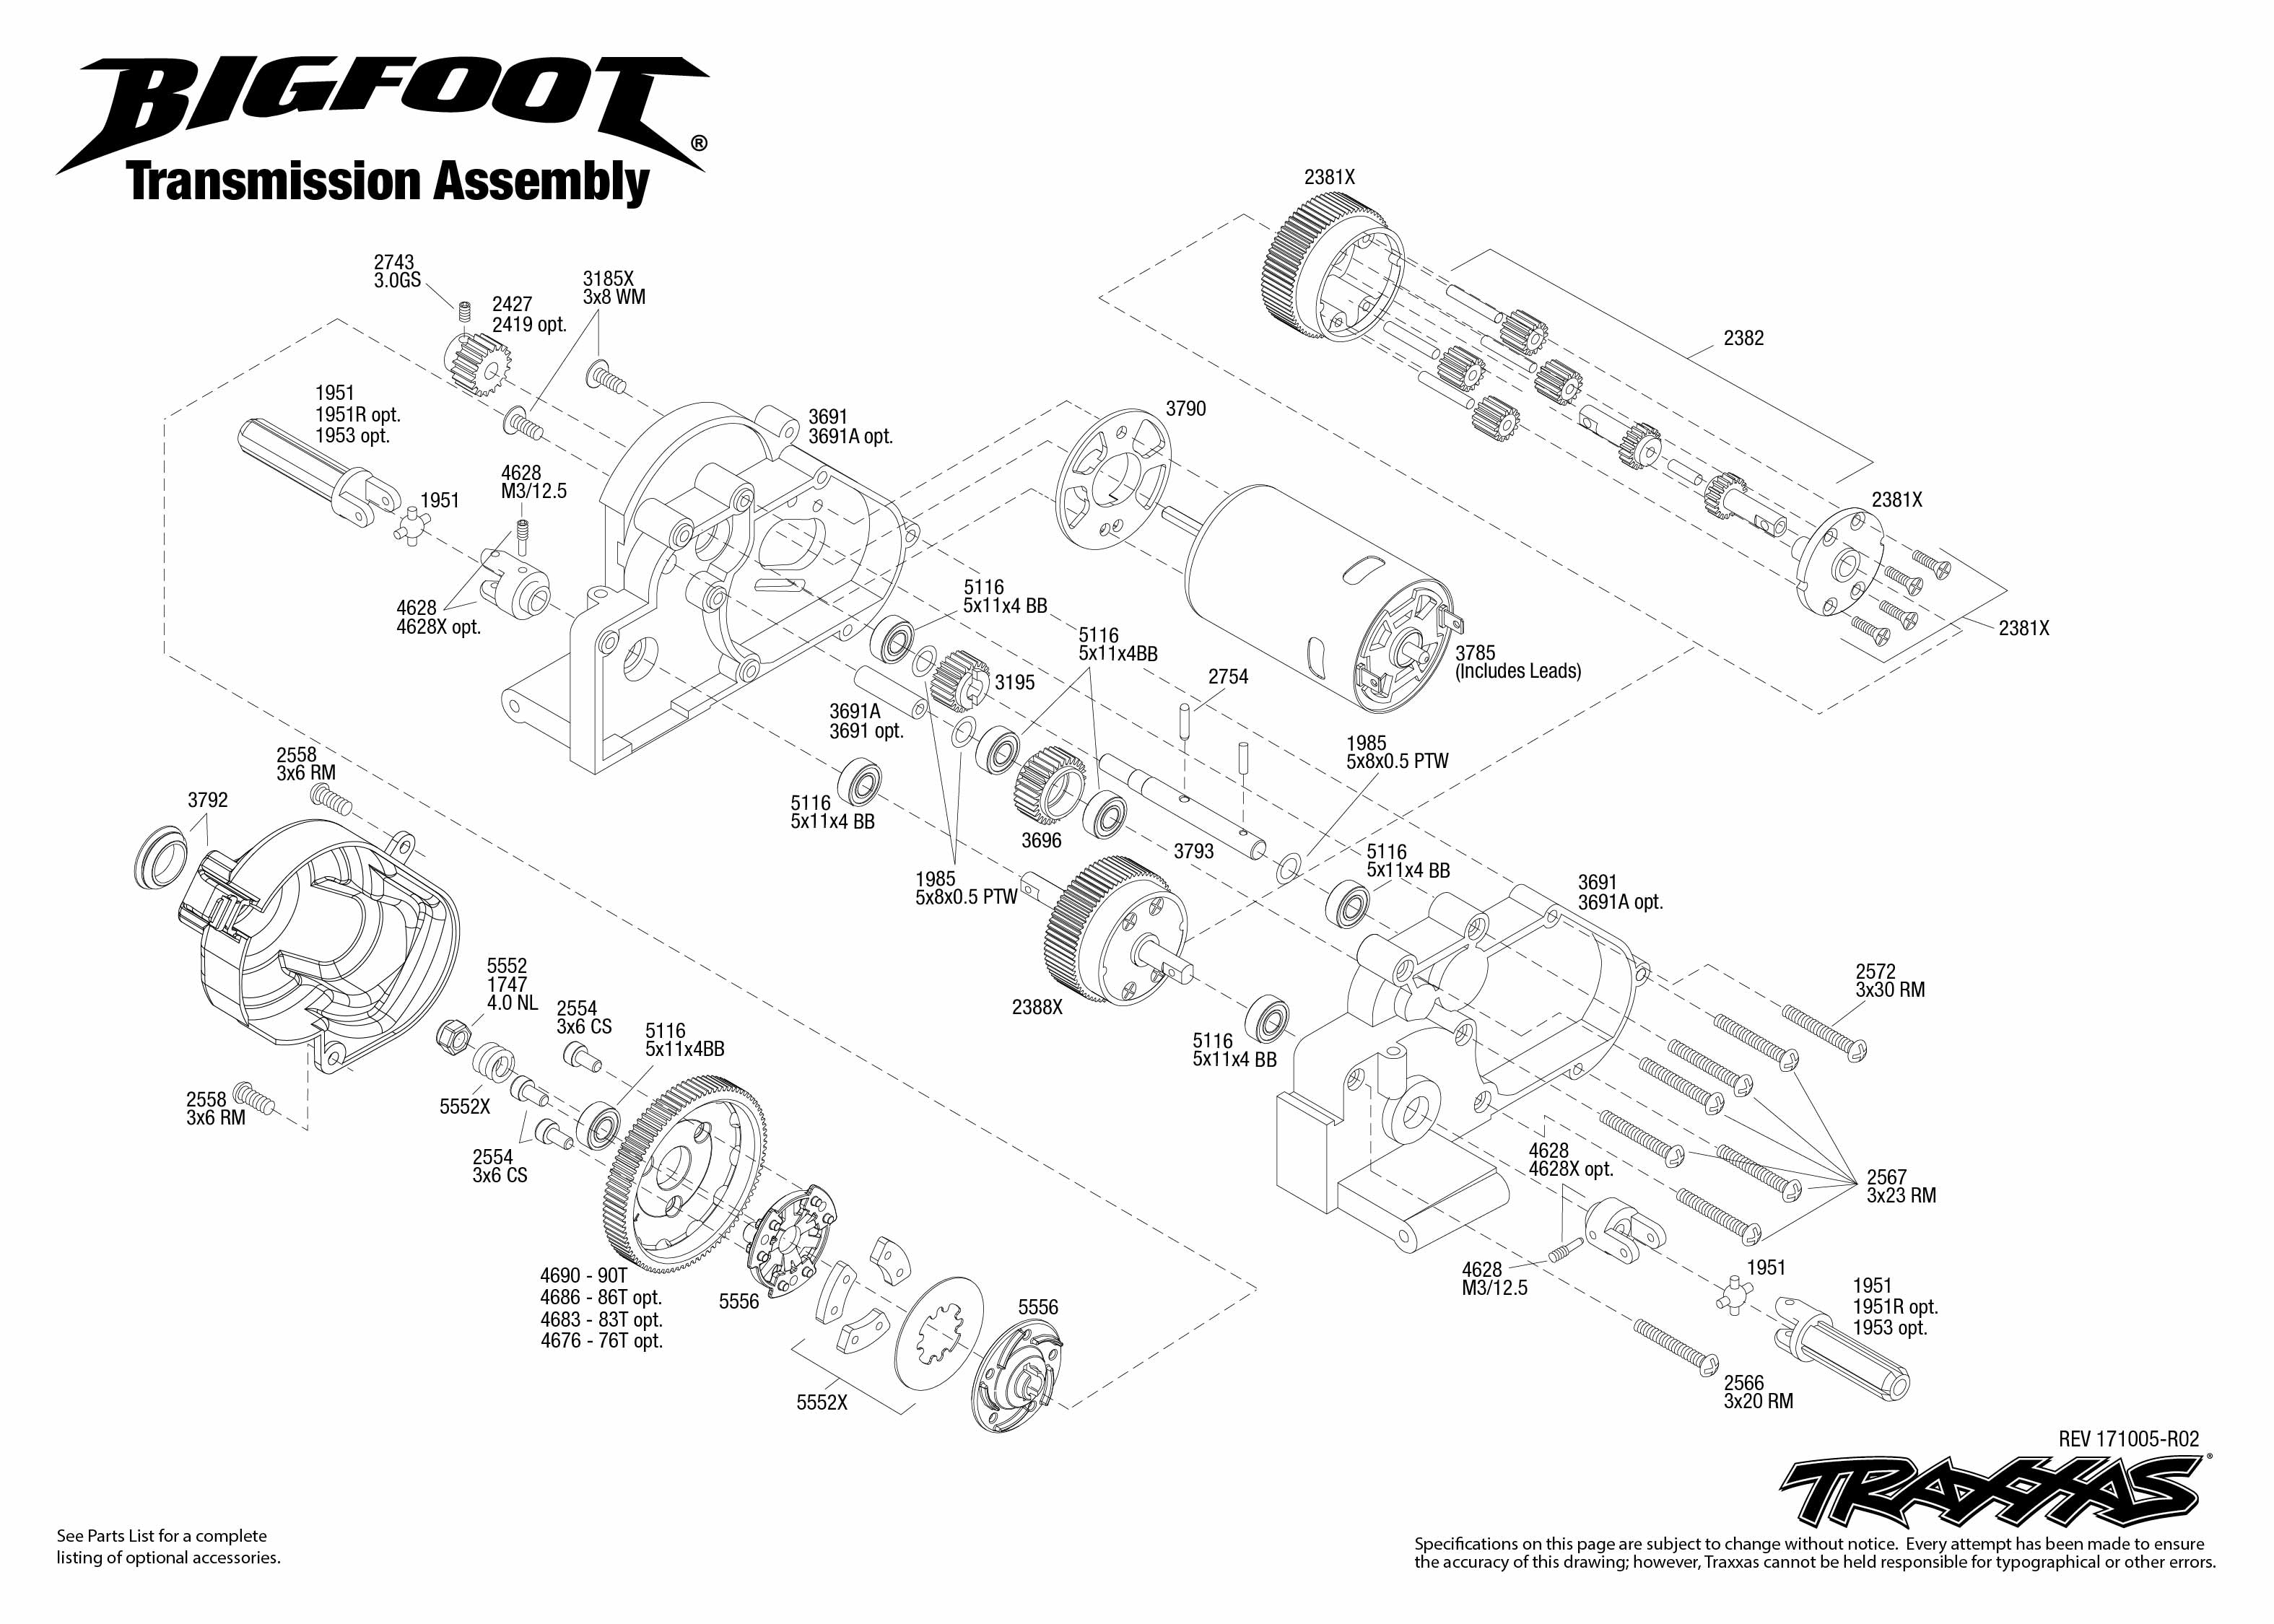 Bigfoot 1 Transmission Assembly Exploded View